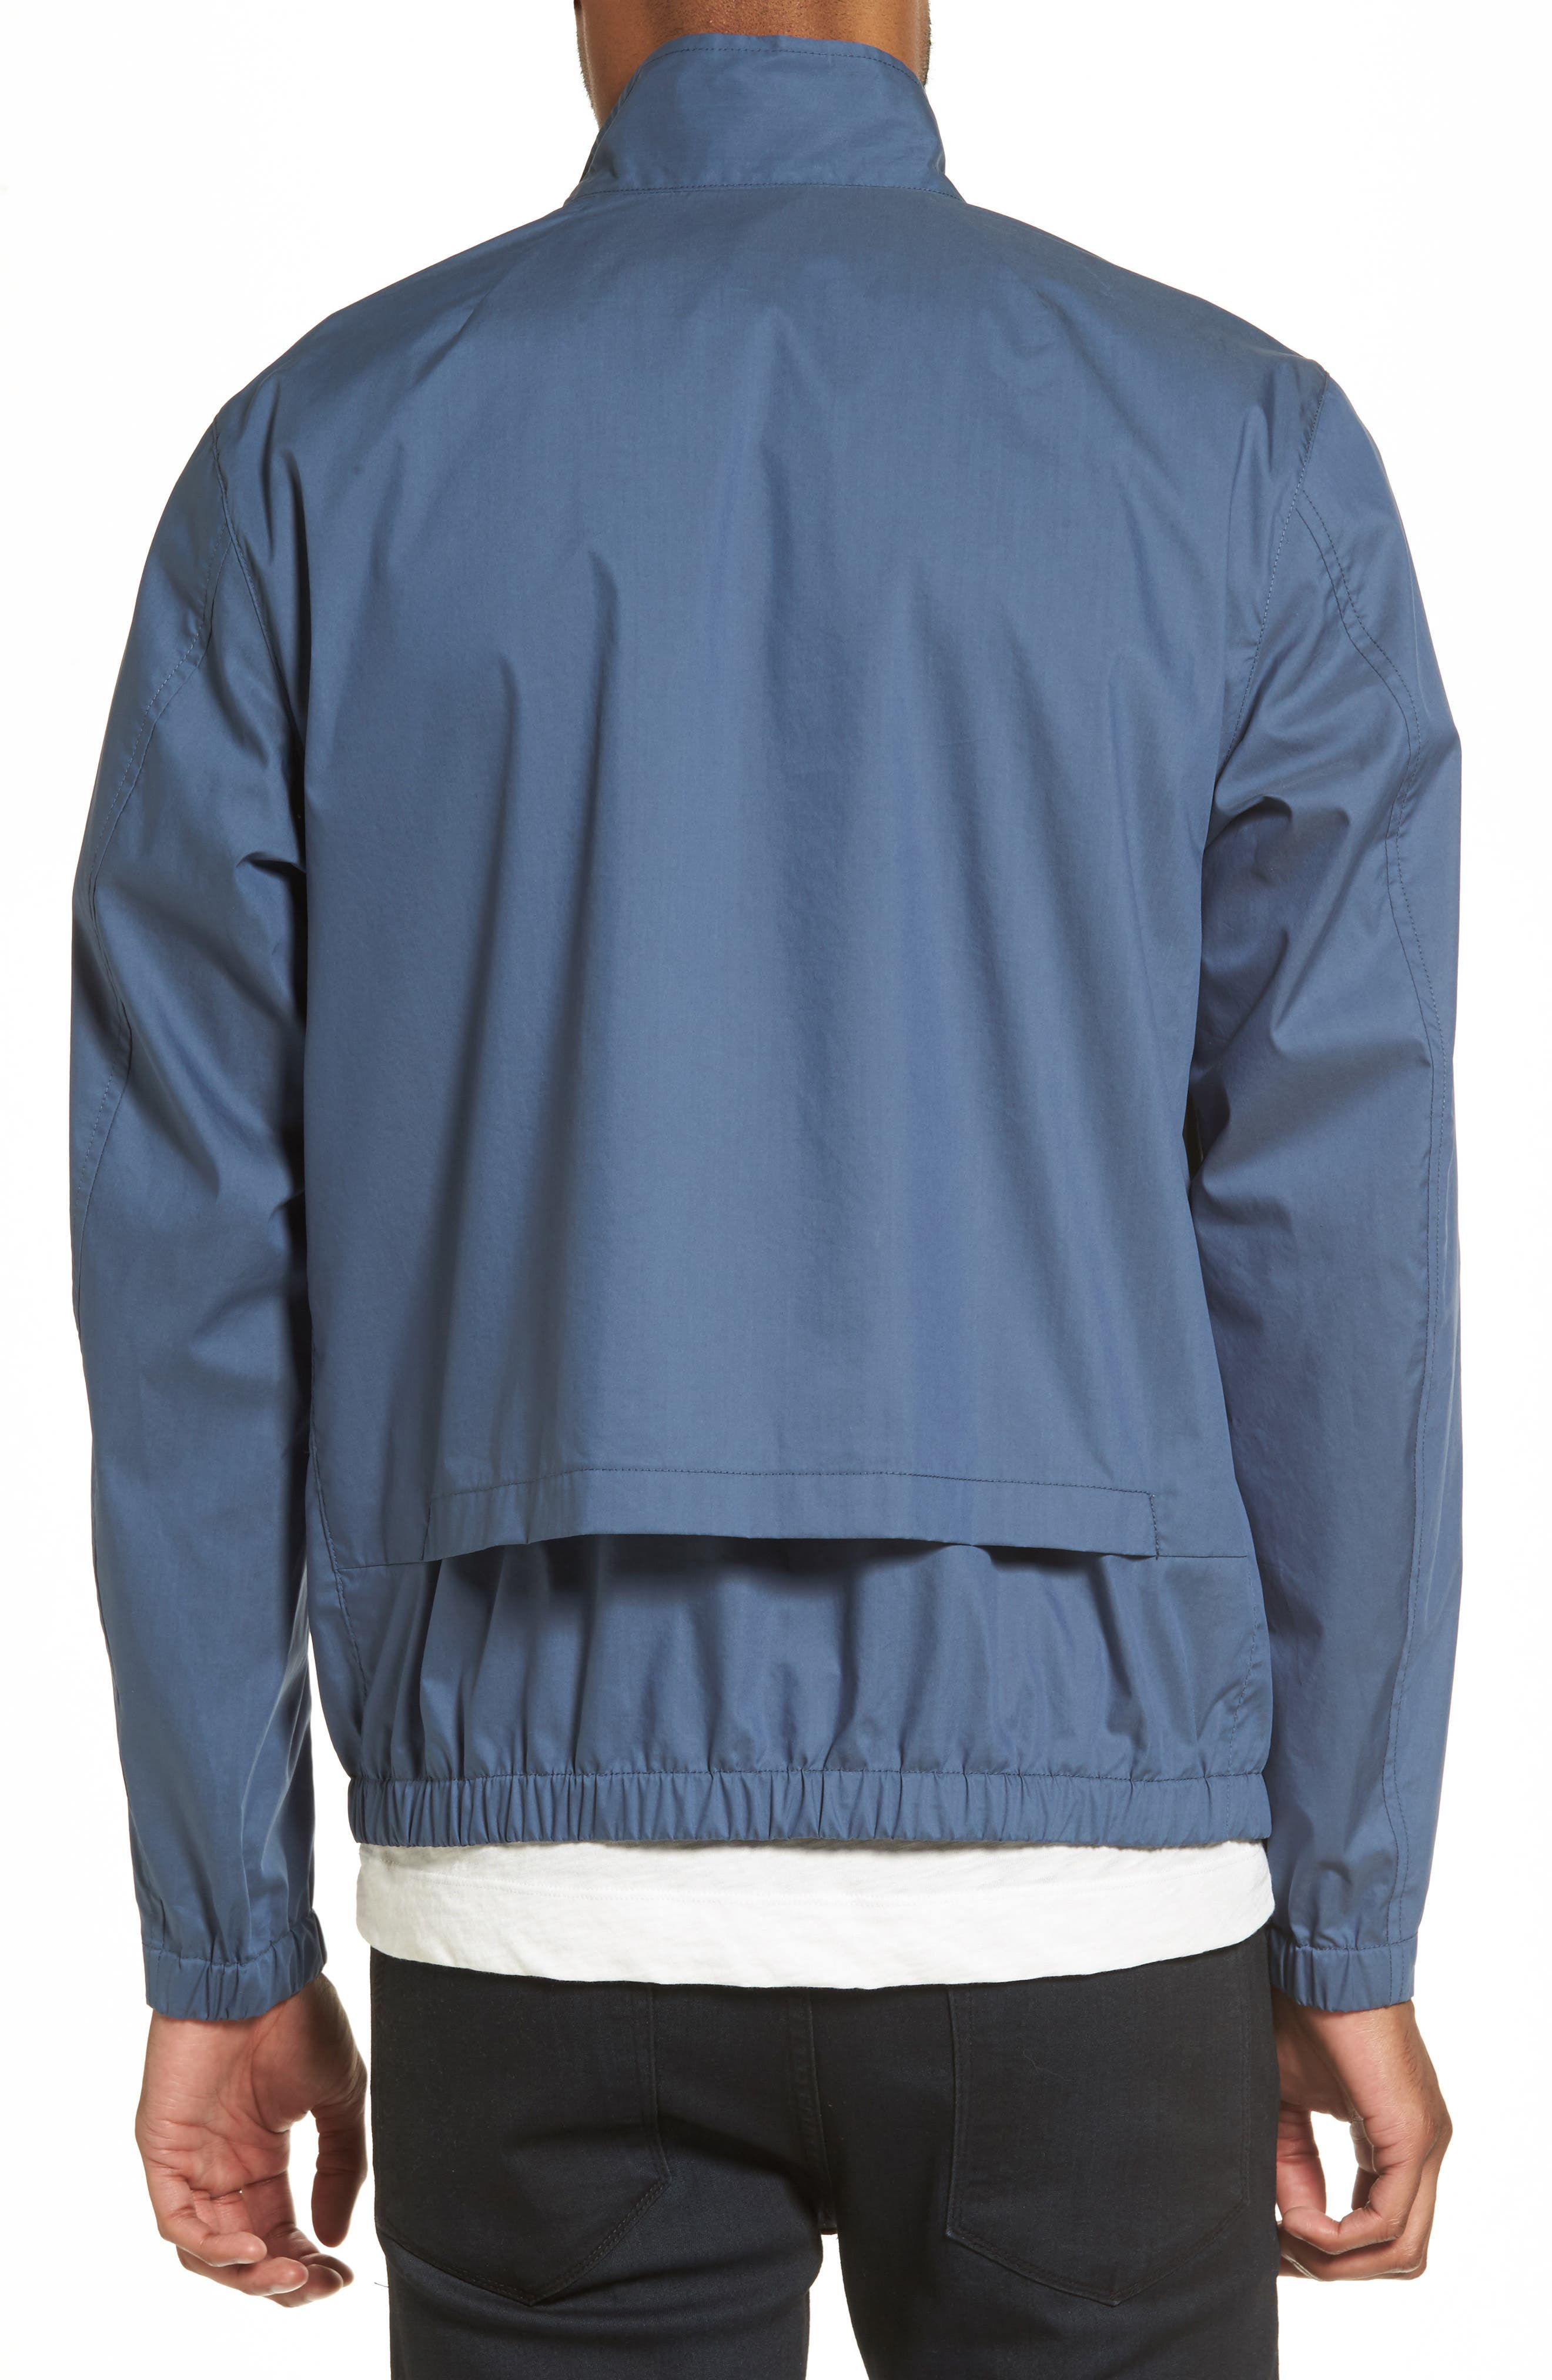 Draftbreak Tech Jacket,                             Alternate thumbnail 2, color,                             400